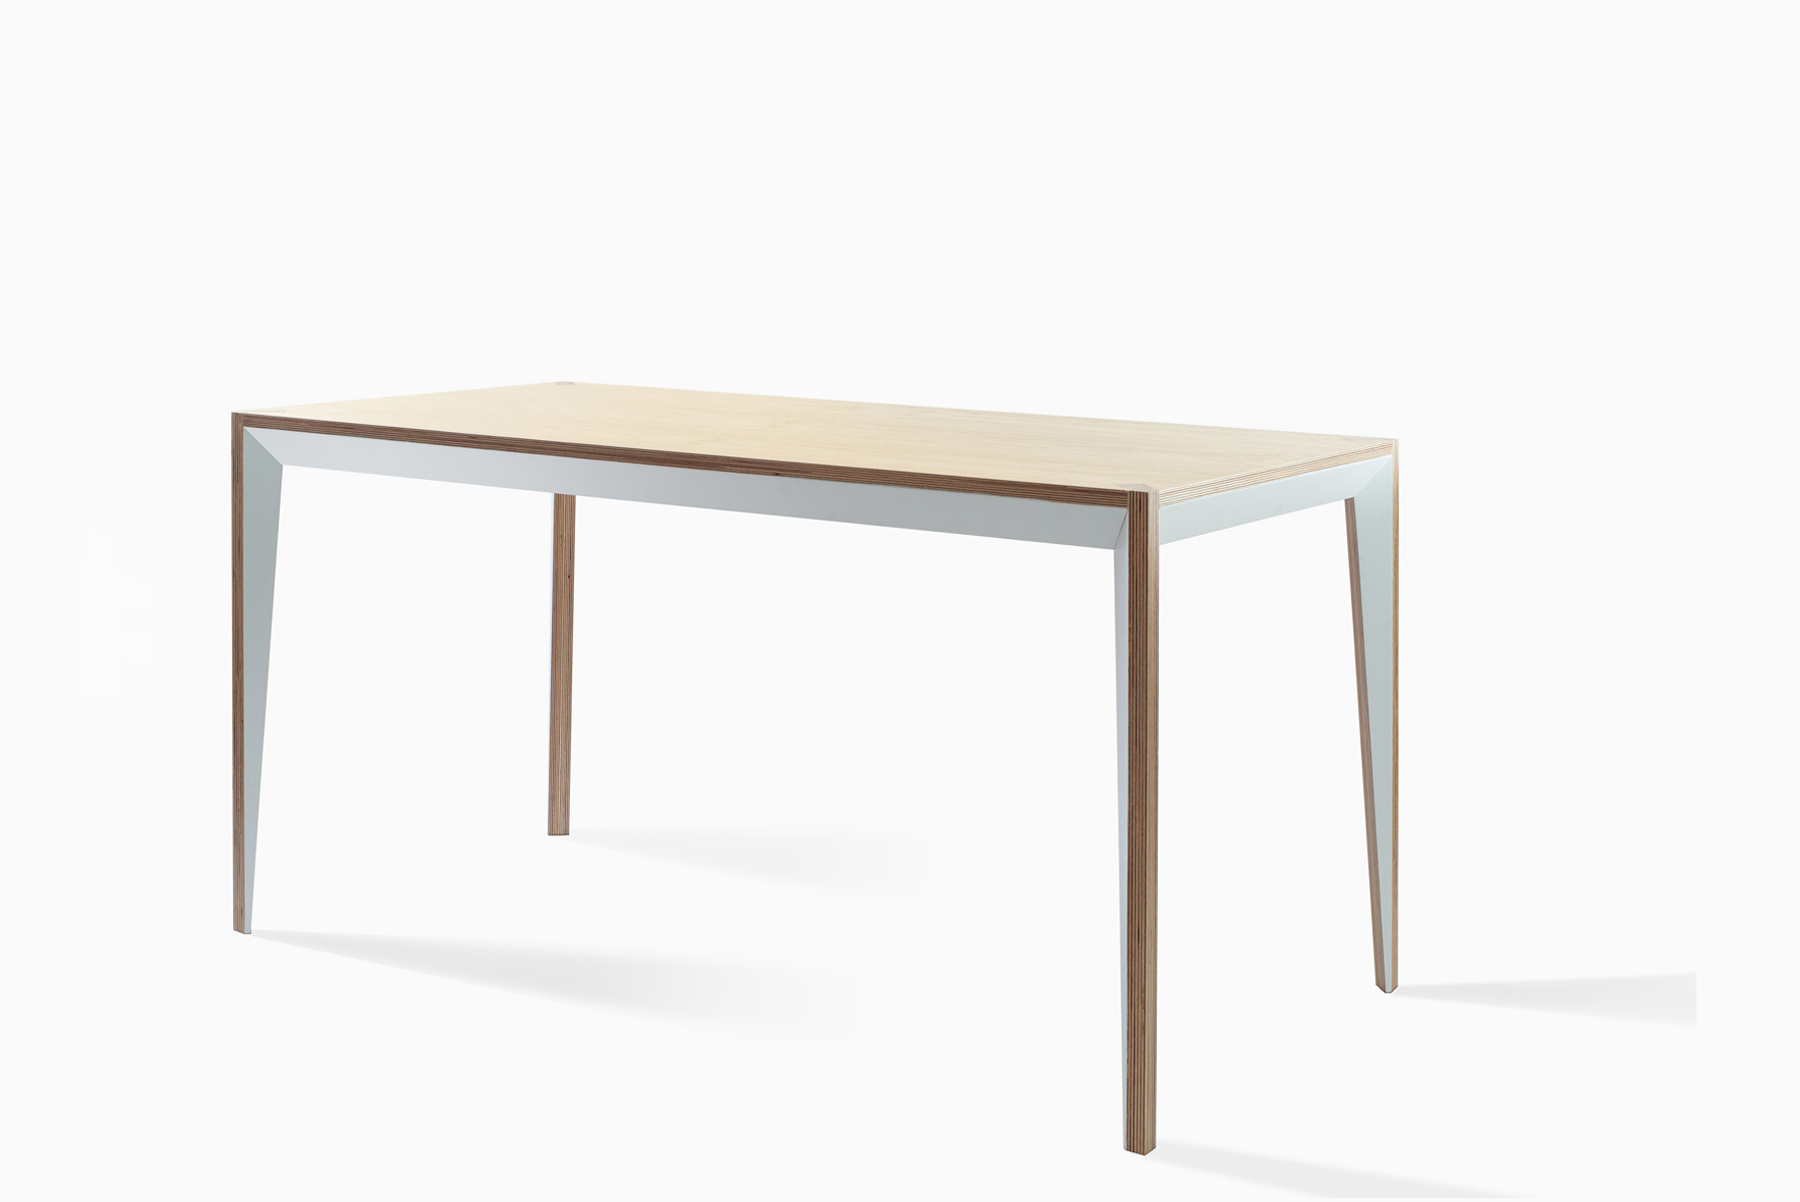 MiMi Table - from $1,589